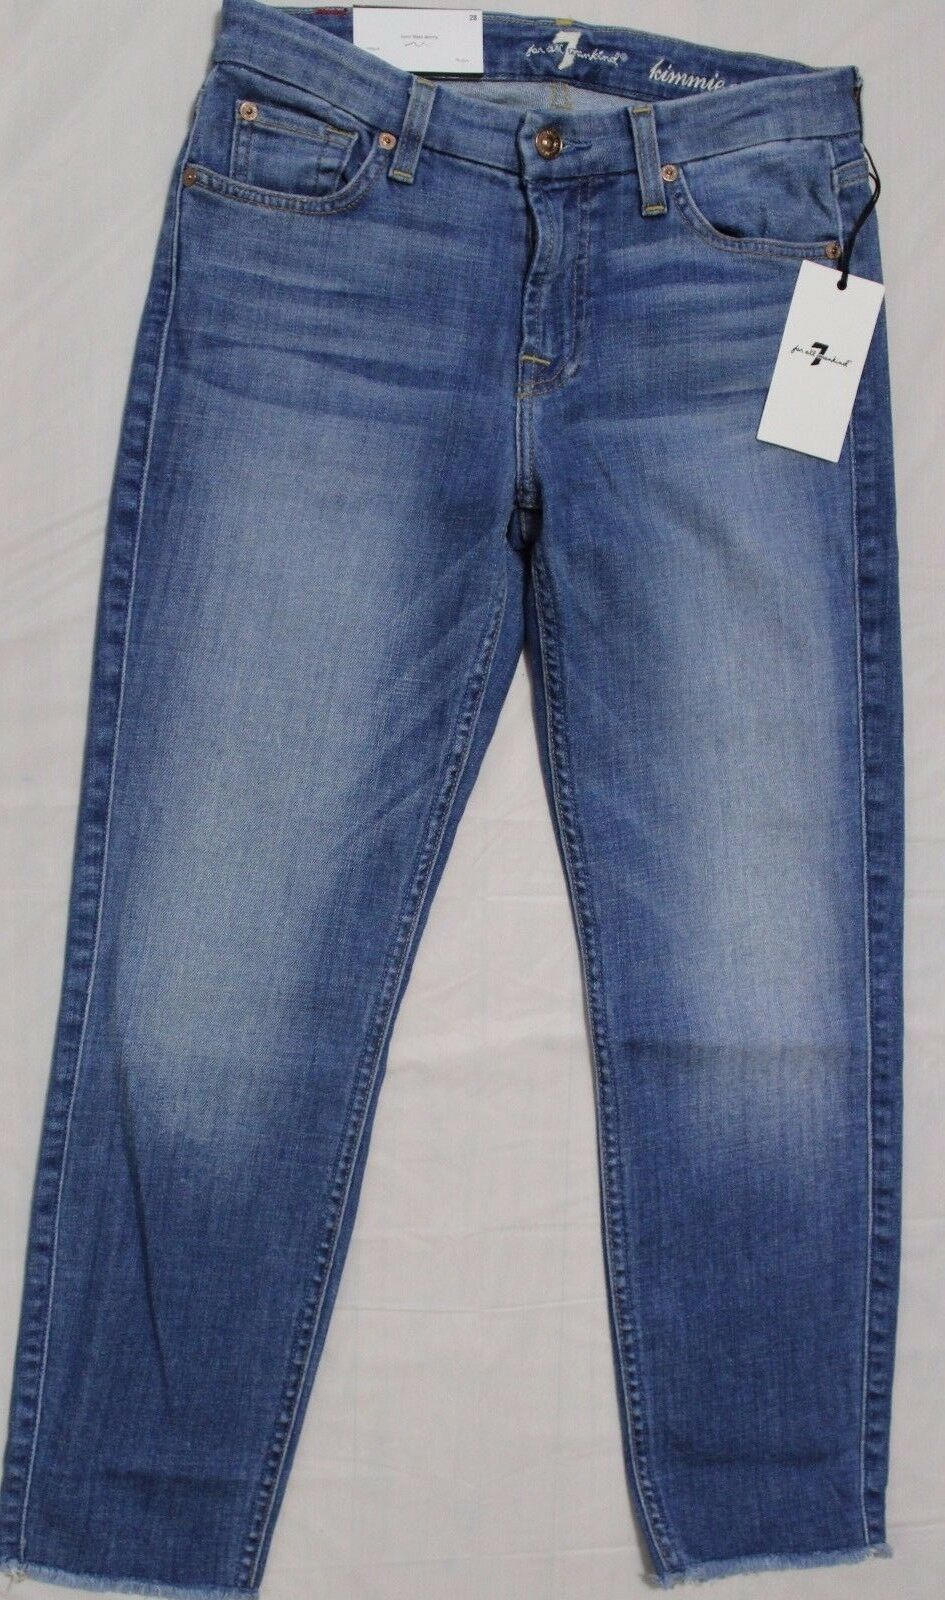 198 7 FOR ALL MANKIND KIMMIE FORM FITTED SKINNY CROP JEANS SZ 28